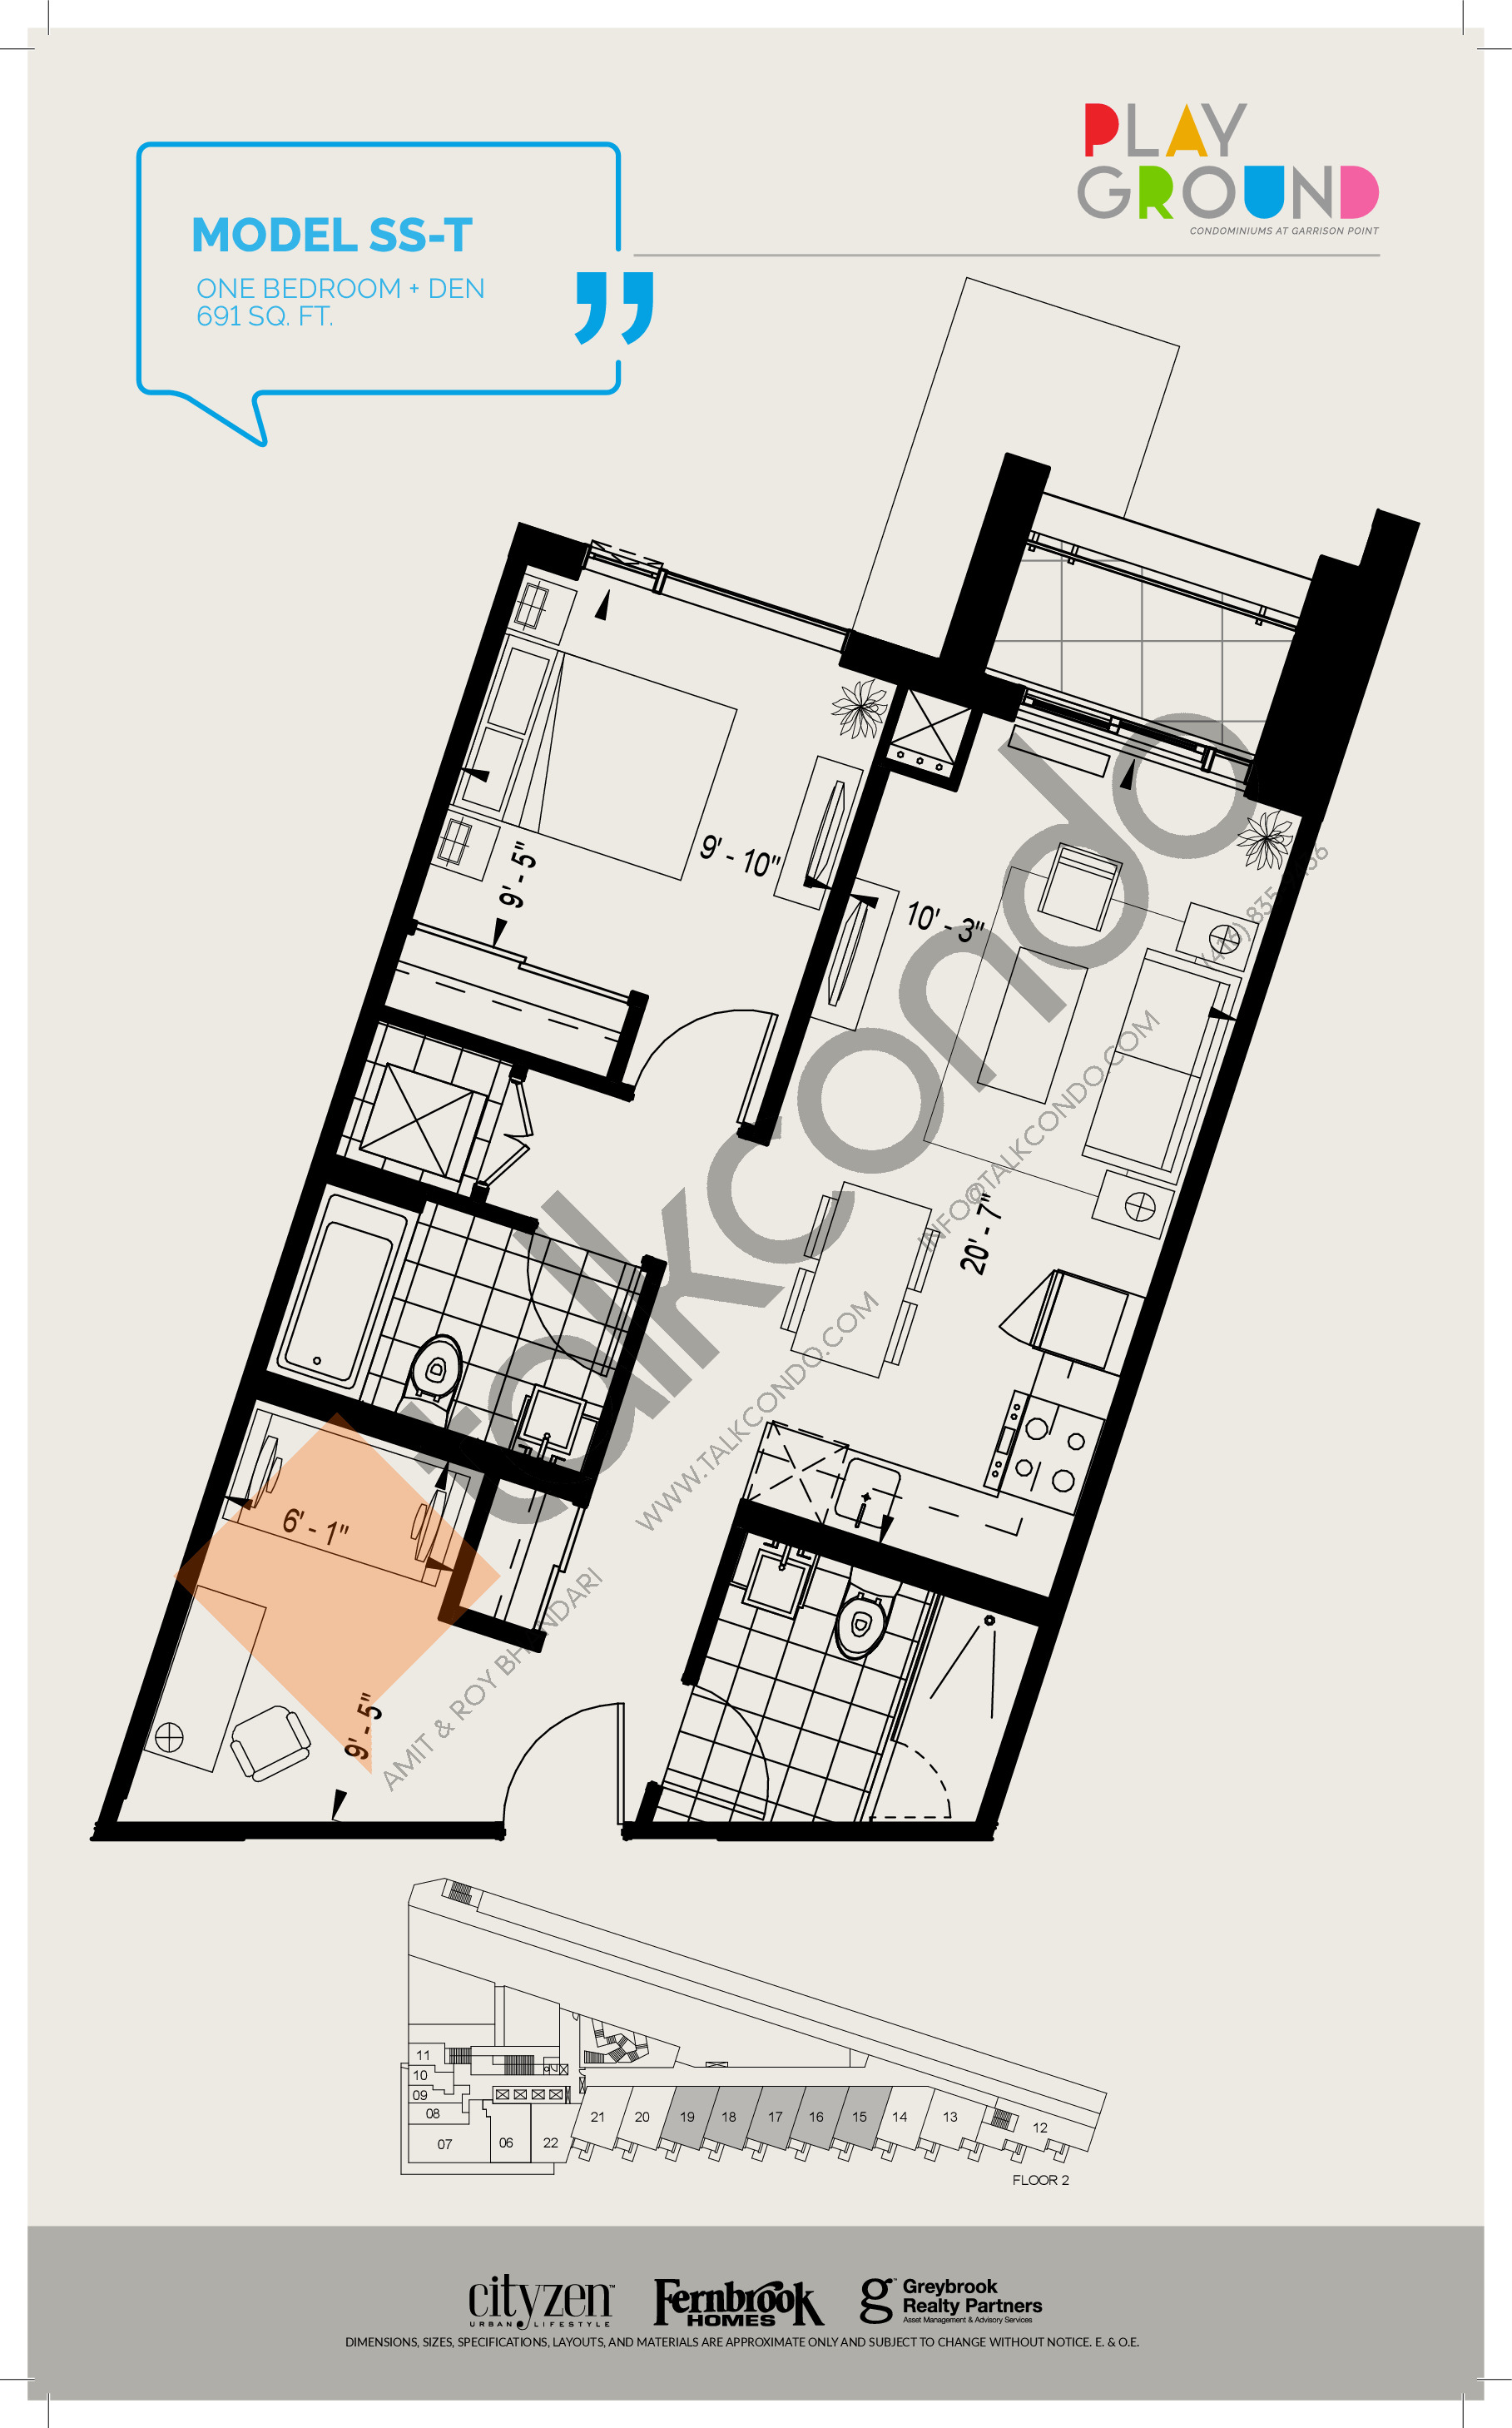 Model SS-T Floor Plan at Playground Condos at Garrison Point - 691 sq.ft